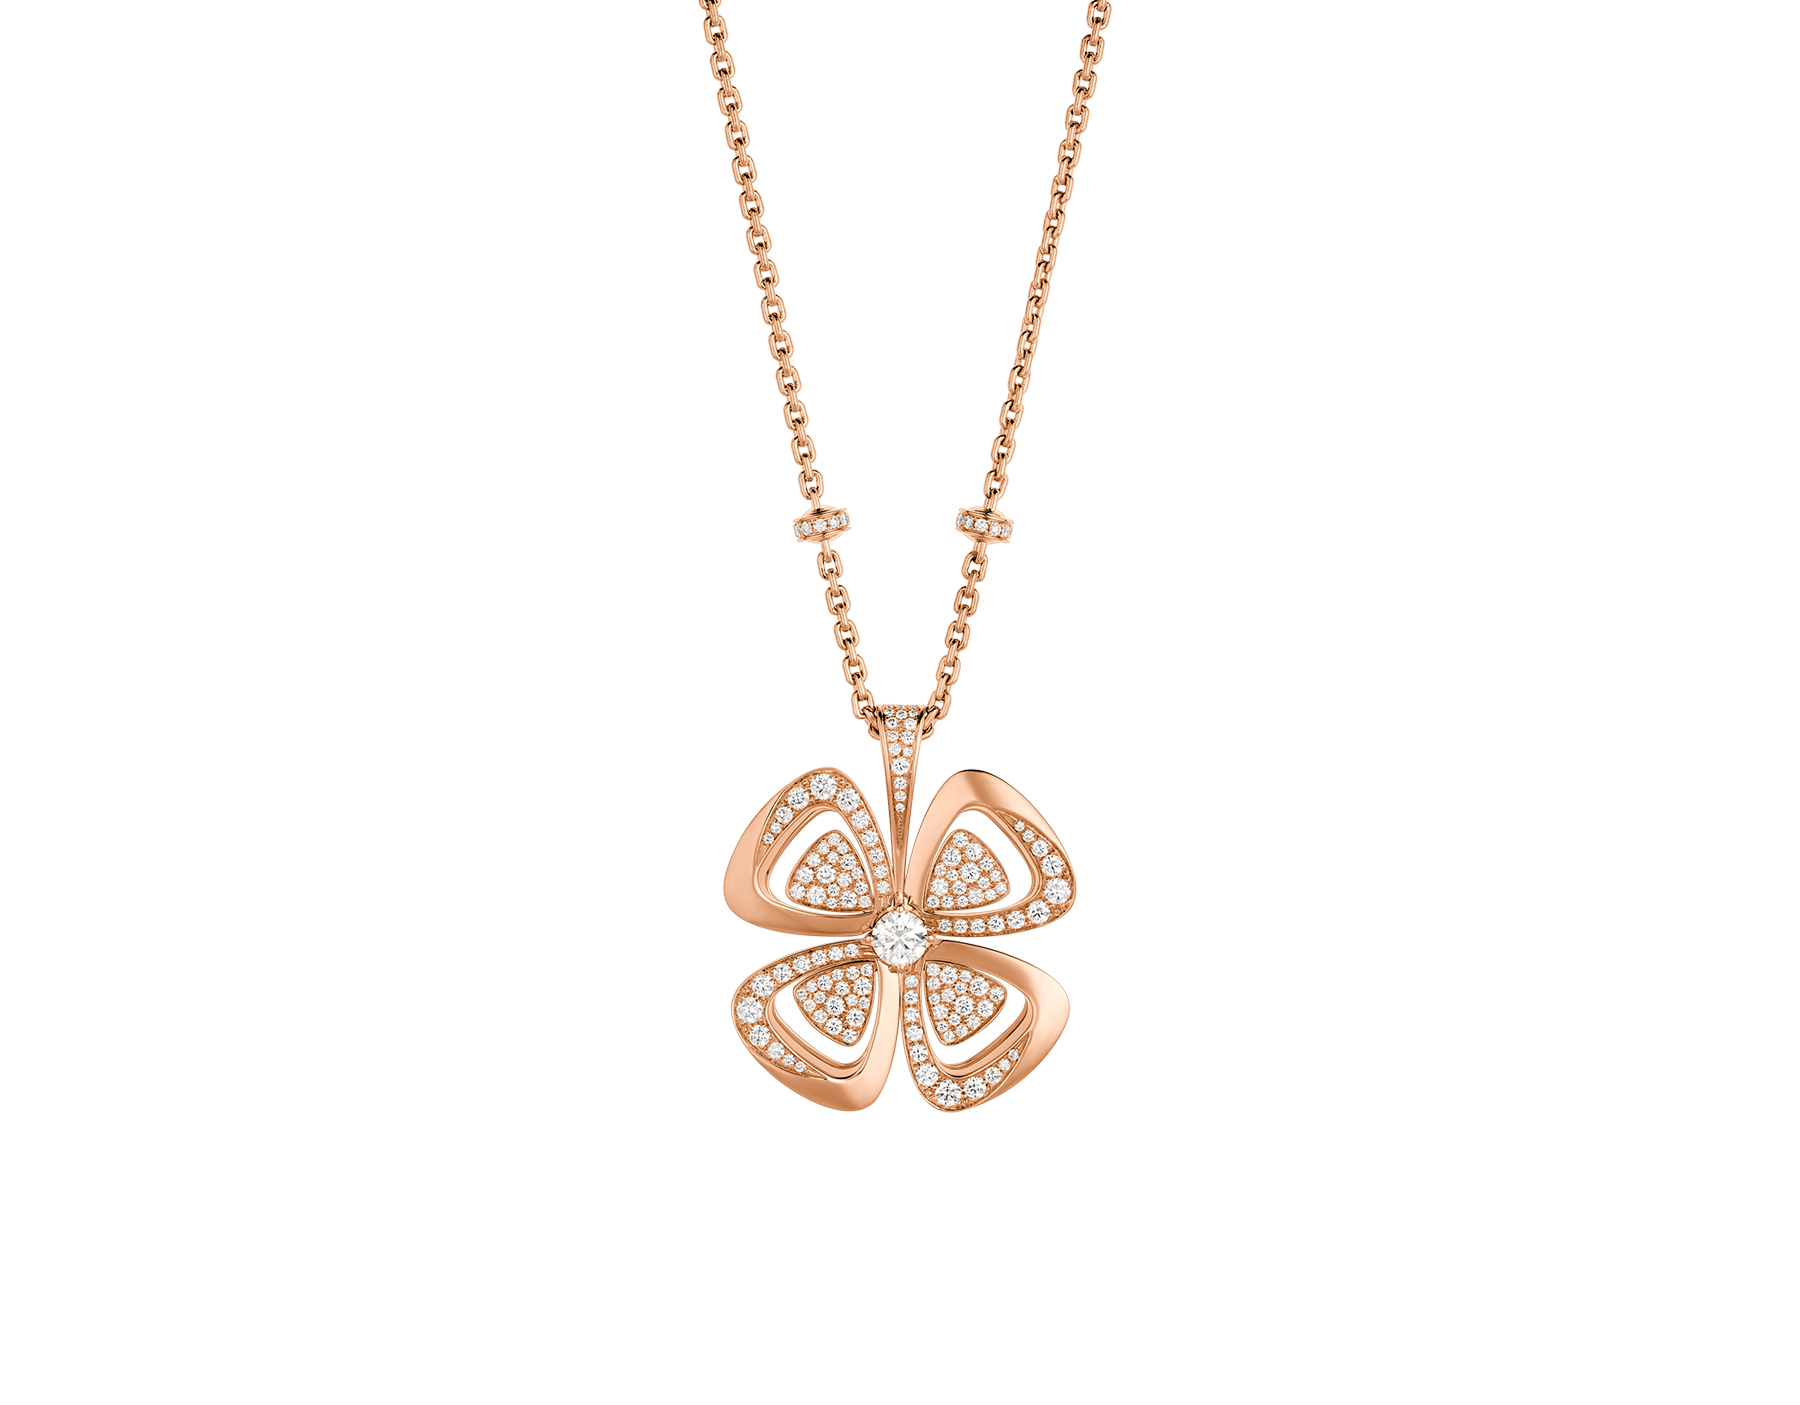 BVLGARI Fiorever 18 kt rose gold necklace set